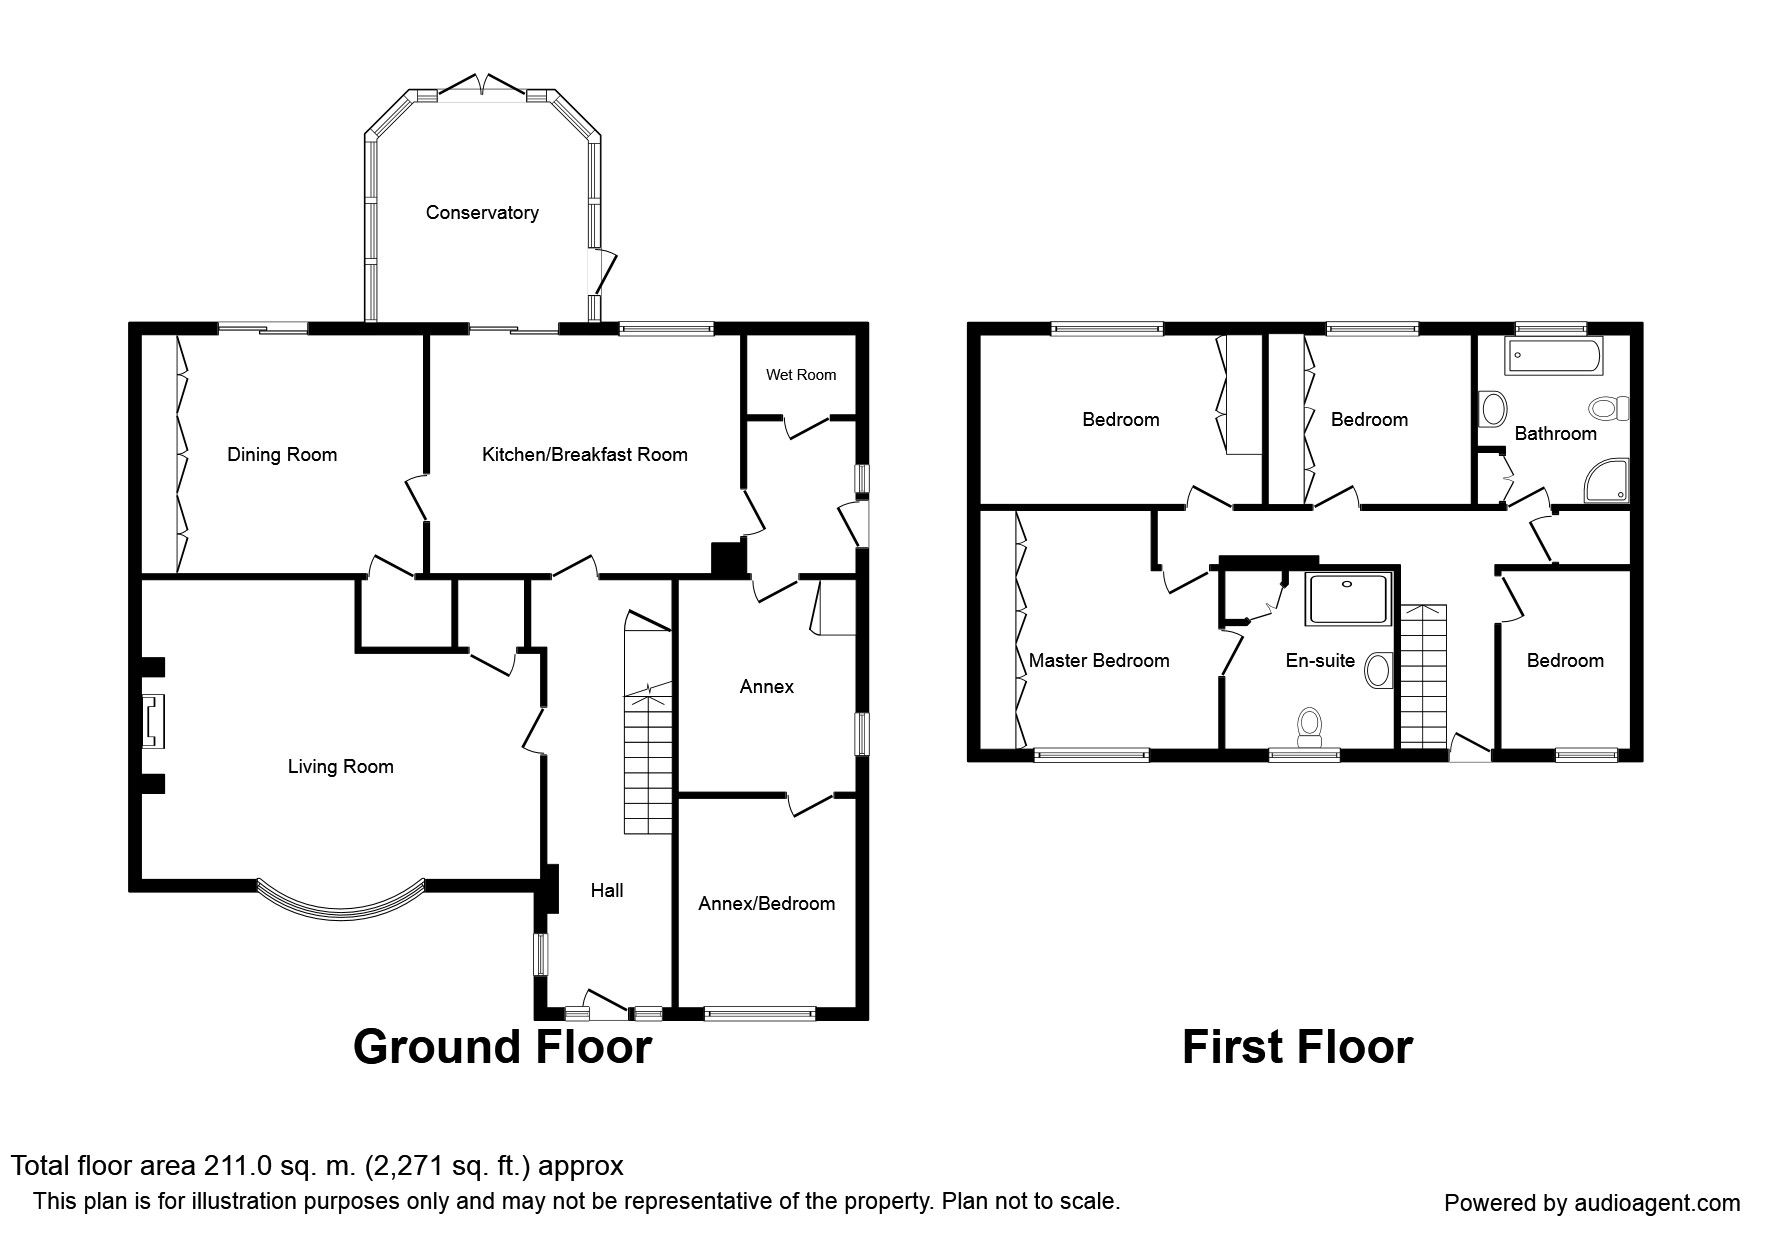 Home Design For Sq Ft Small Home Designs India - 1250 sq ft house plans